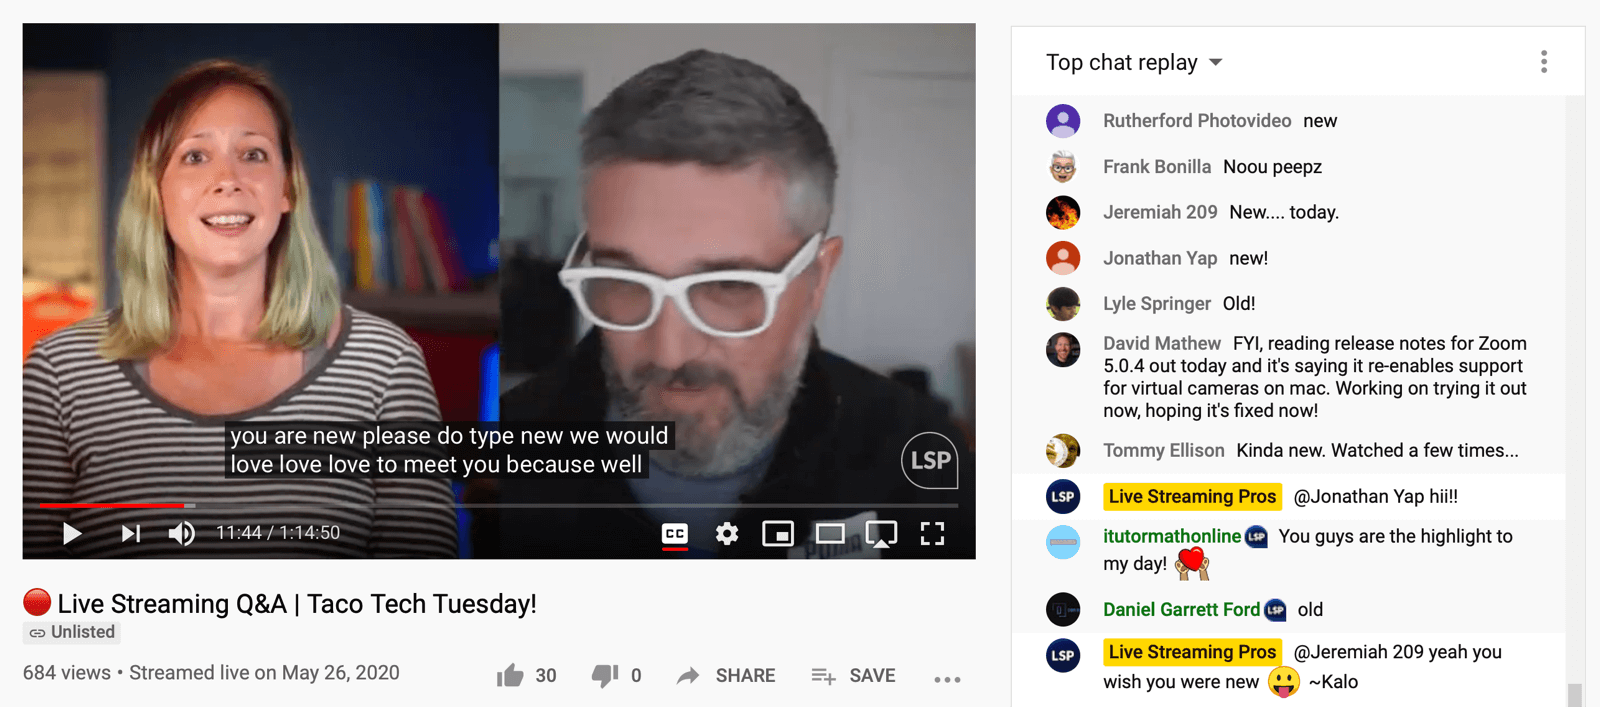 screenshot of Live Streaming Pros Facebook Live video with chat replay